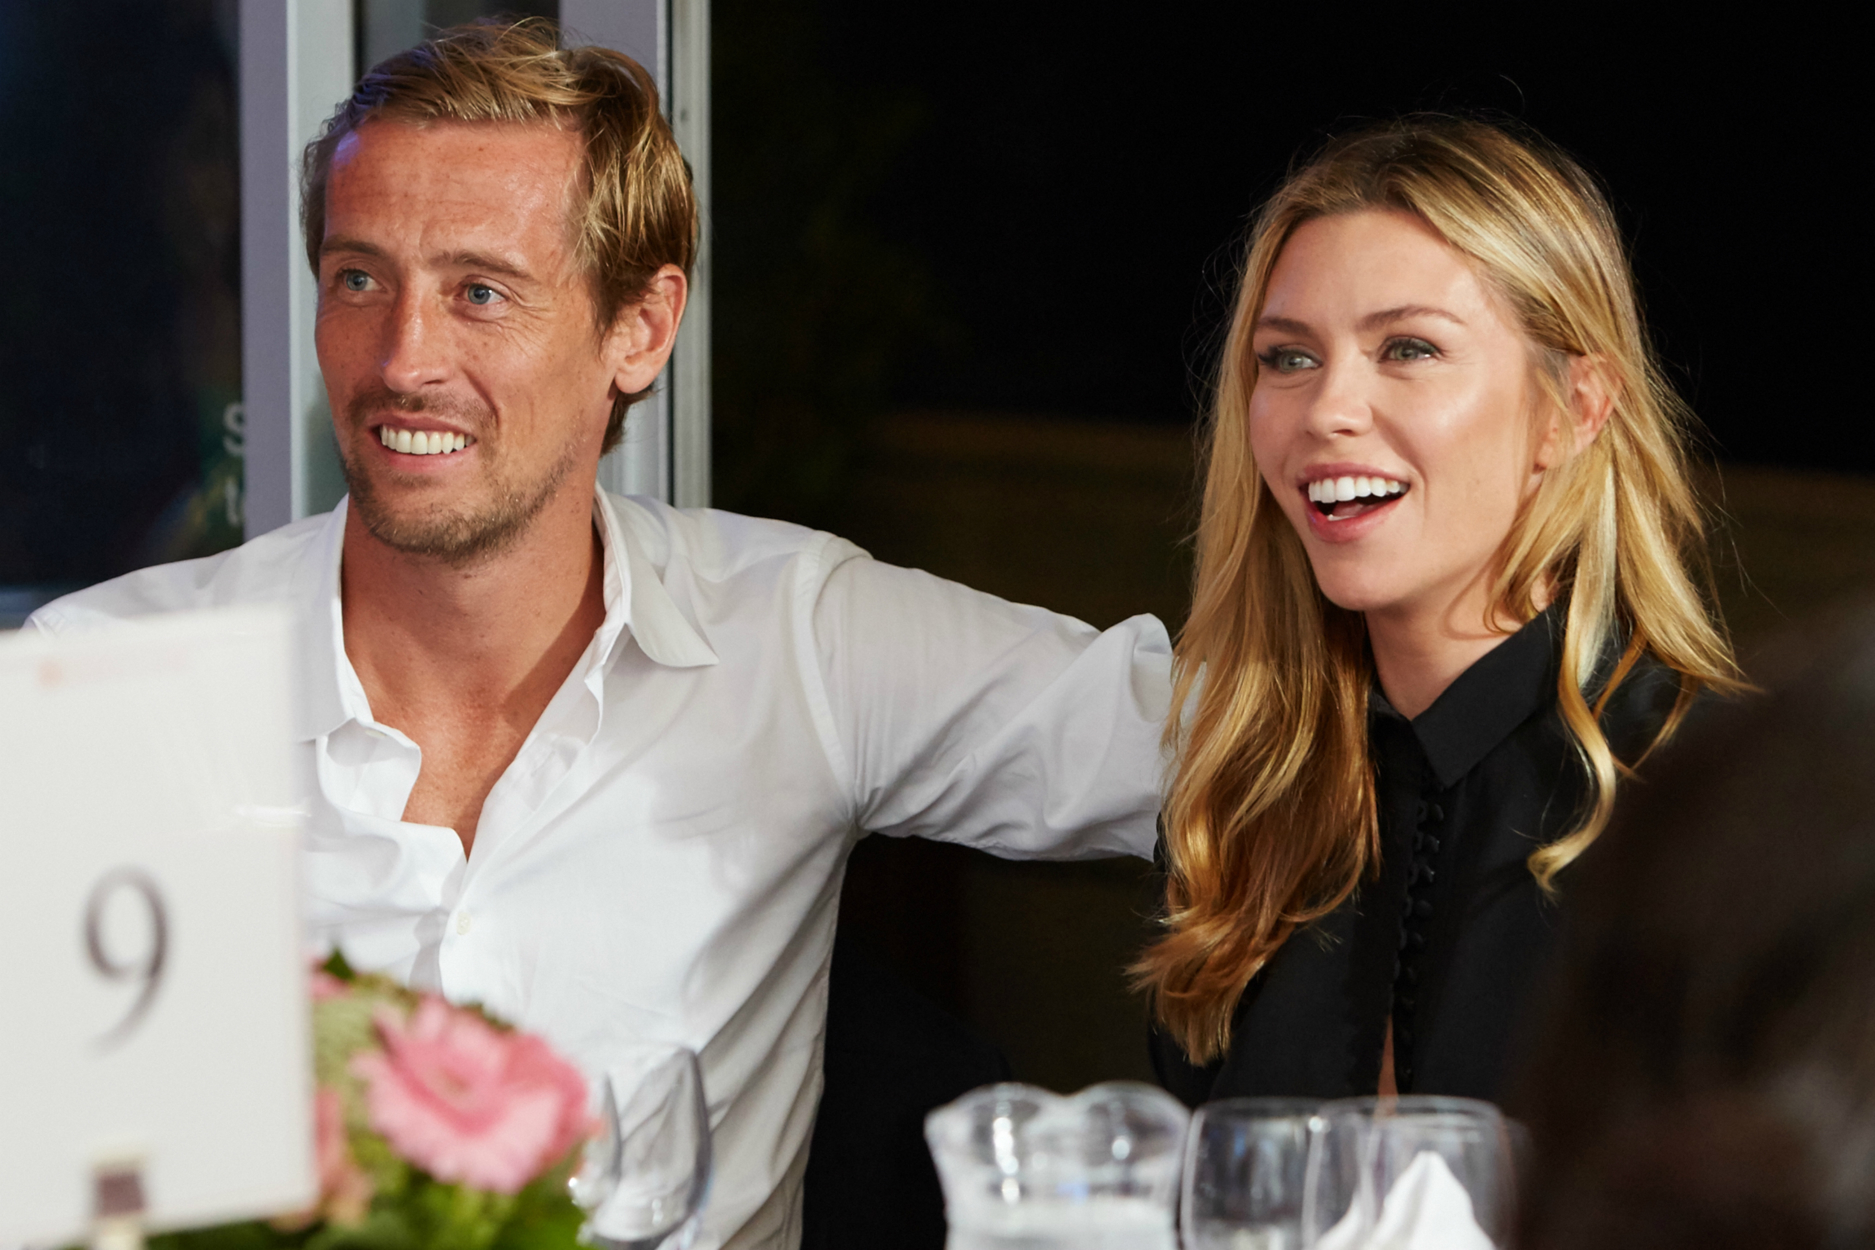 Premier League footballer Peter Crouch and his wife, model and TV presenter, Abbey Clancy enjoying a lighter moment at the gala dinner to launch SpringBoard.